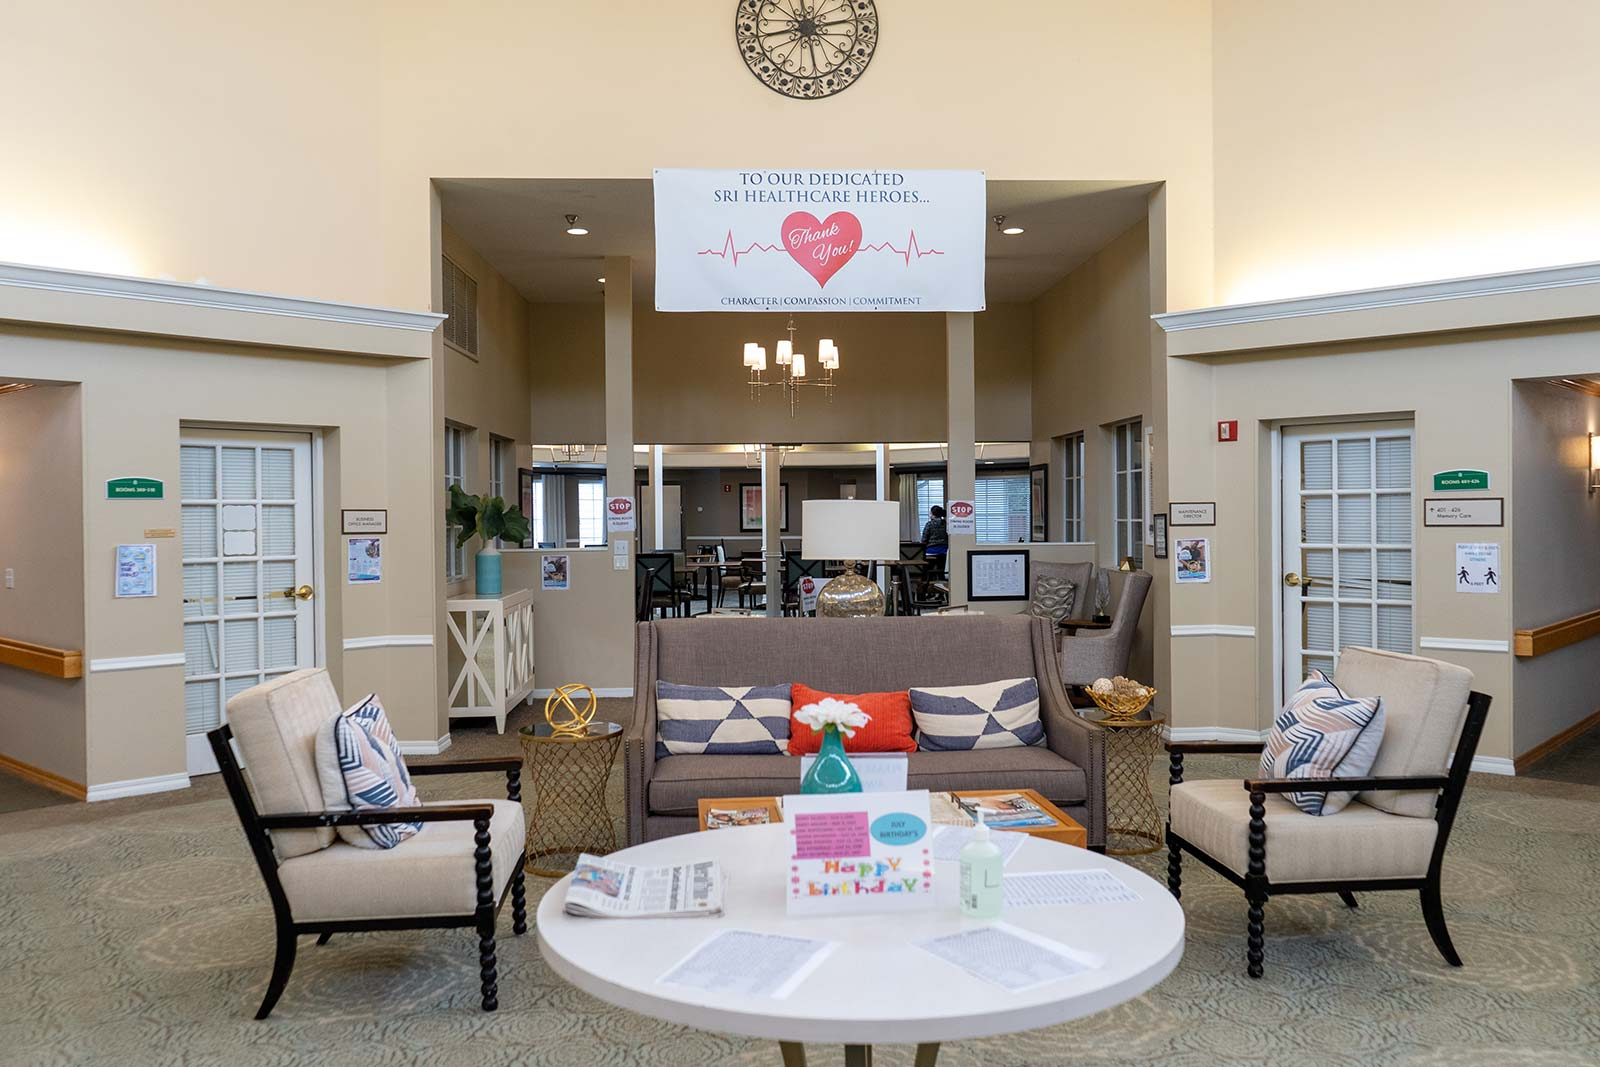 Front lobby and atrium at Heron House assisted living and memory care community in Sarasota, FL